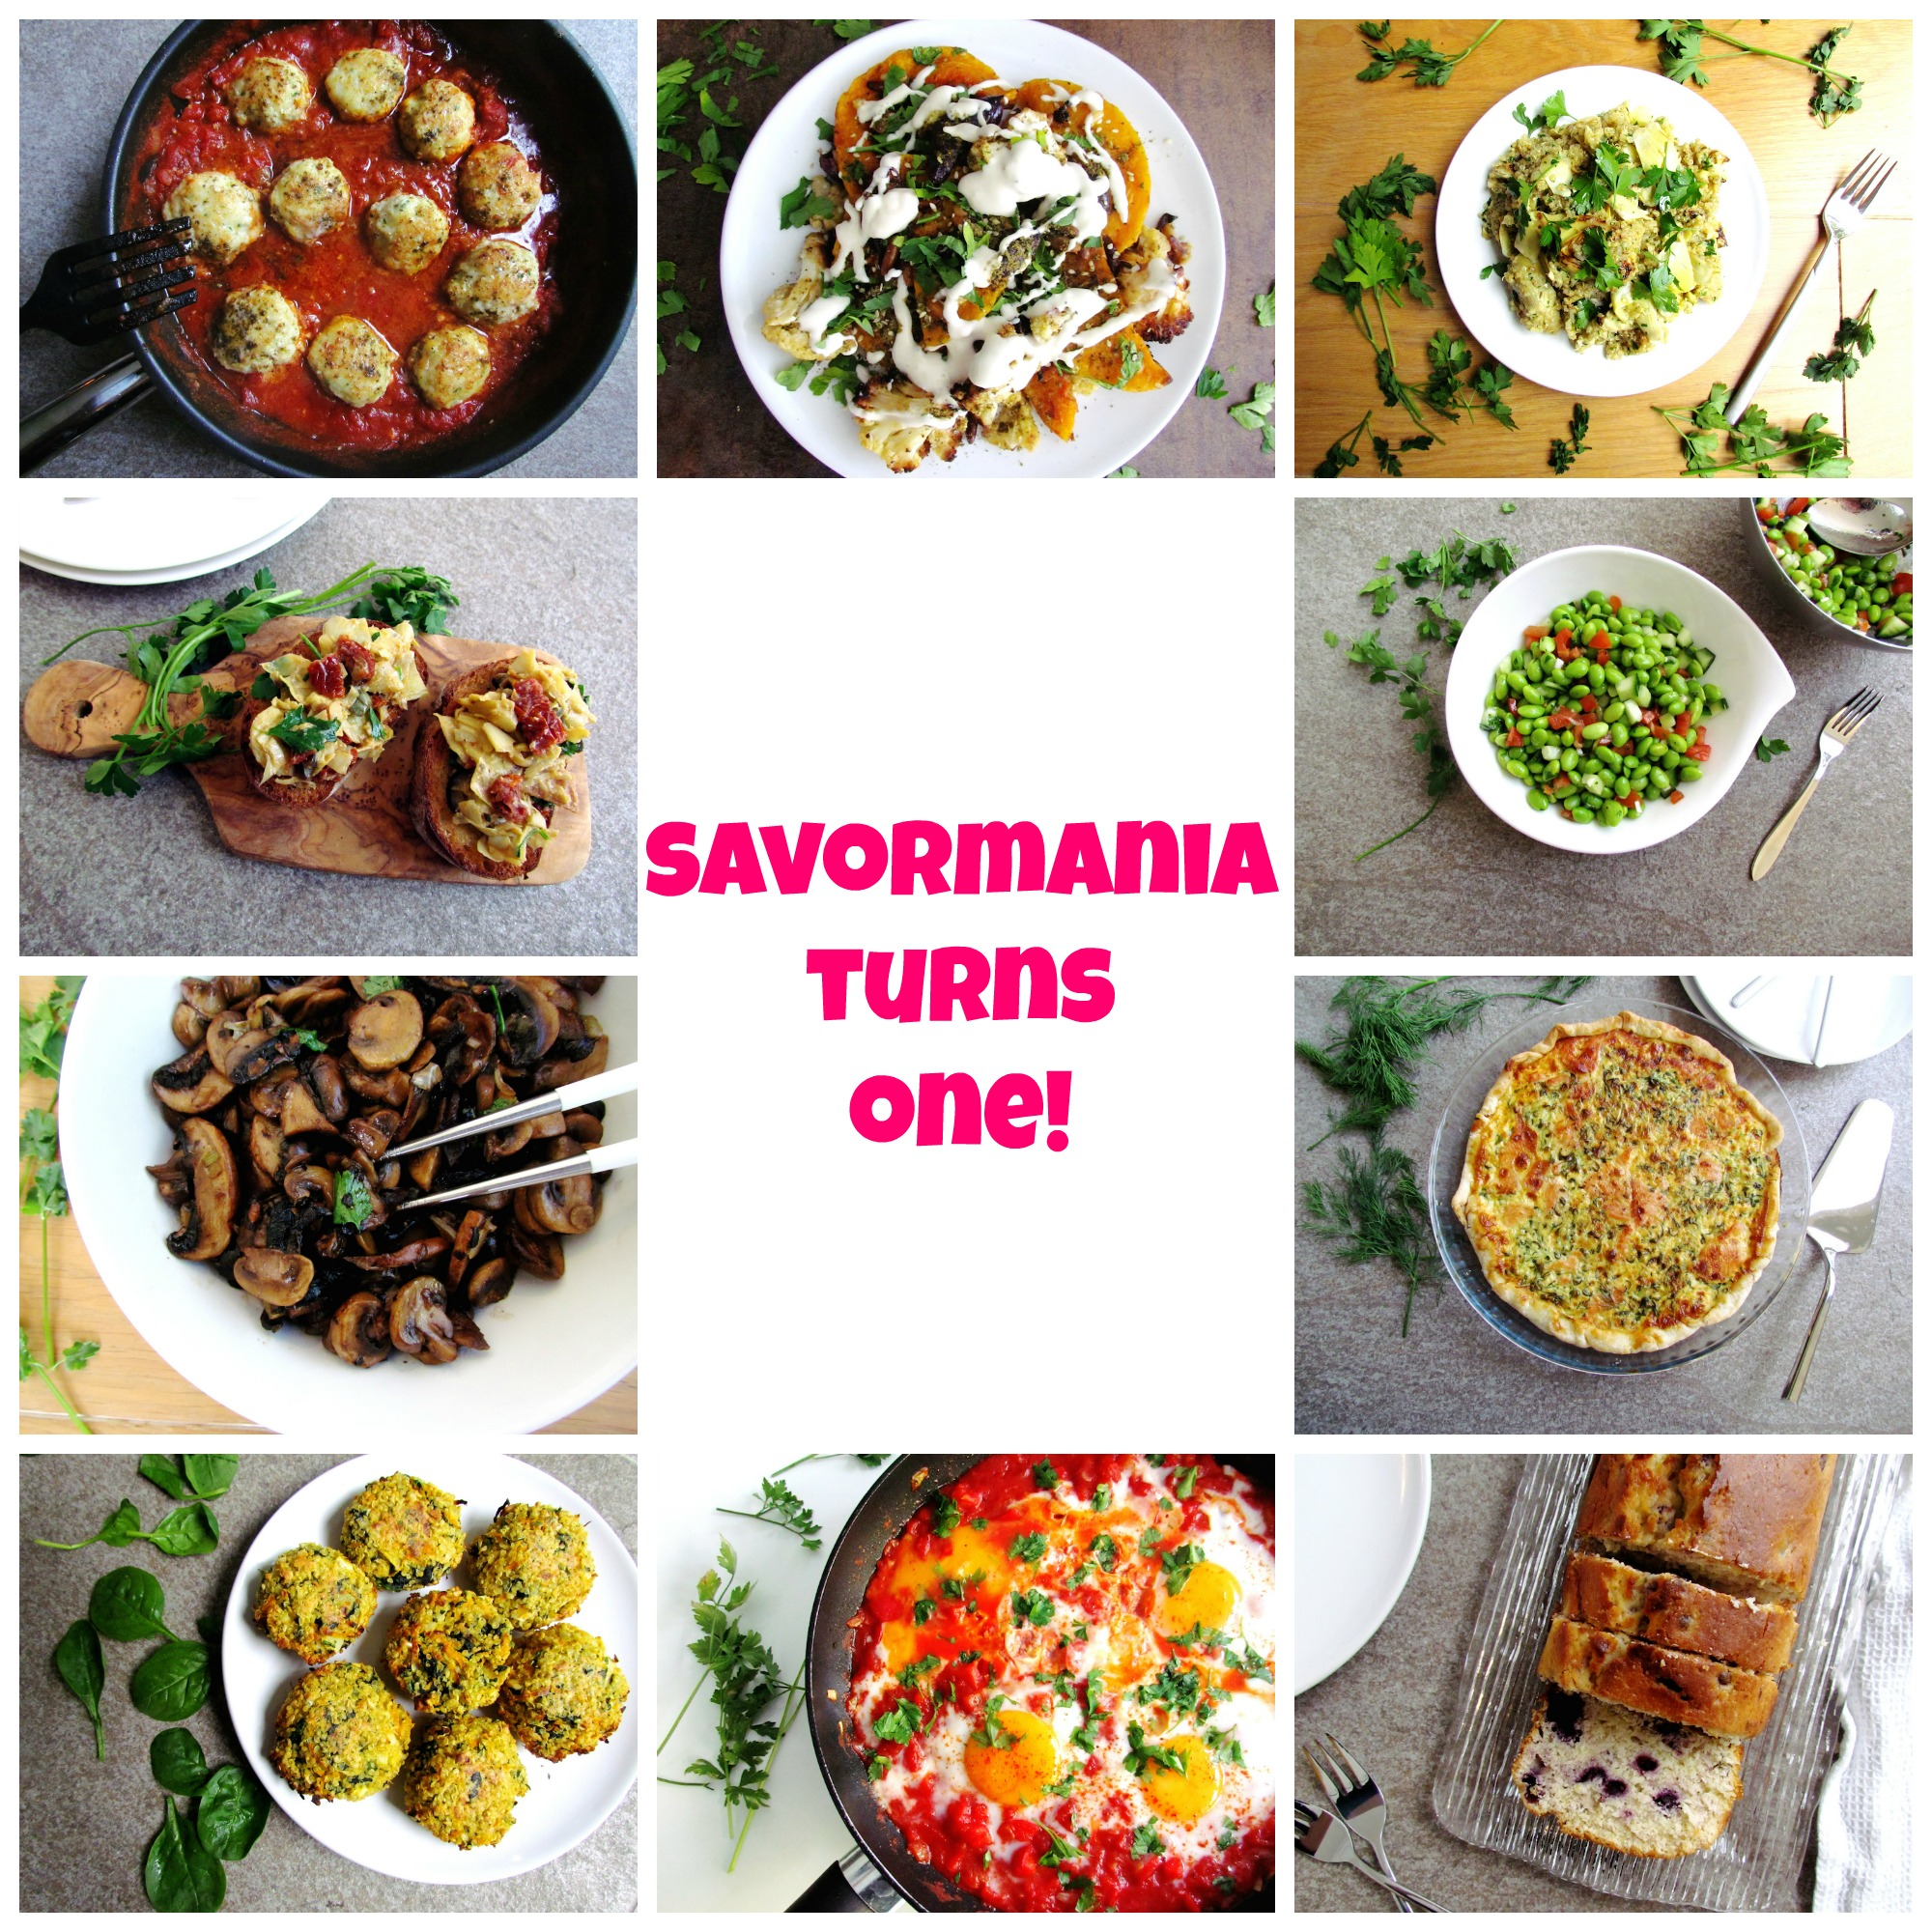 savormania turns one!